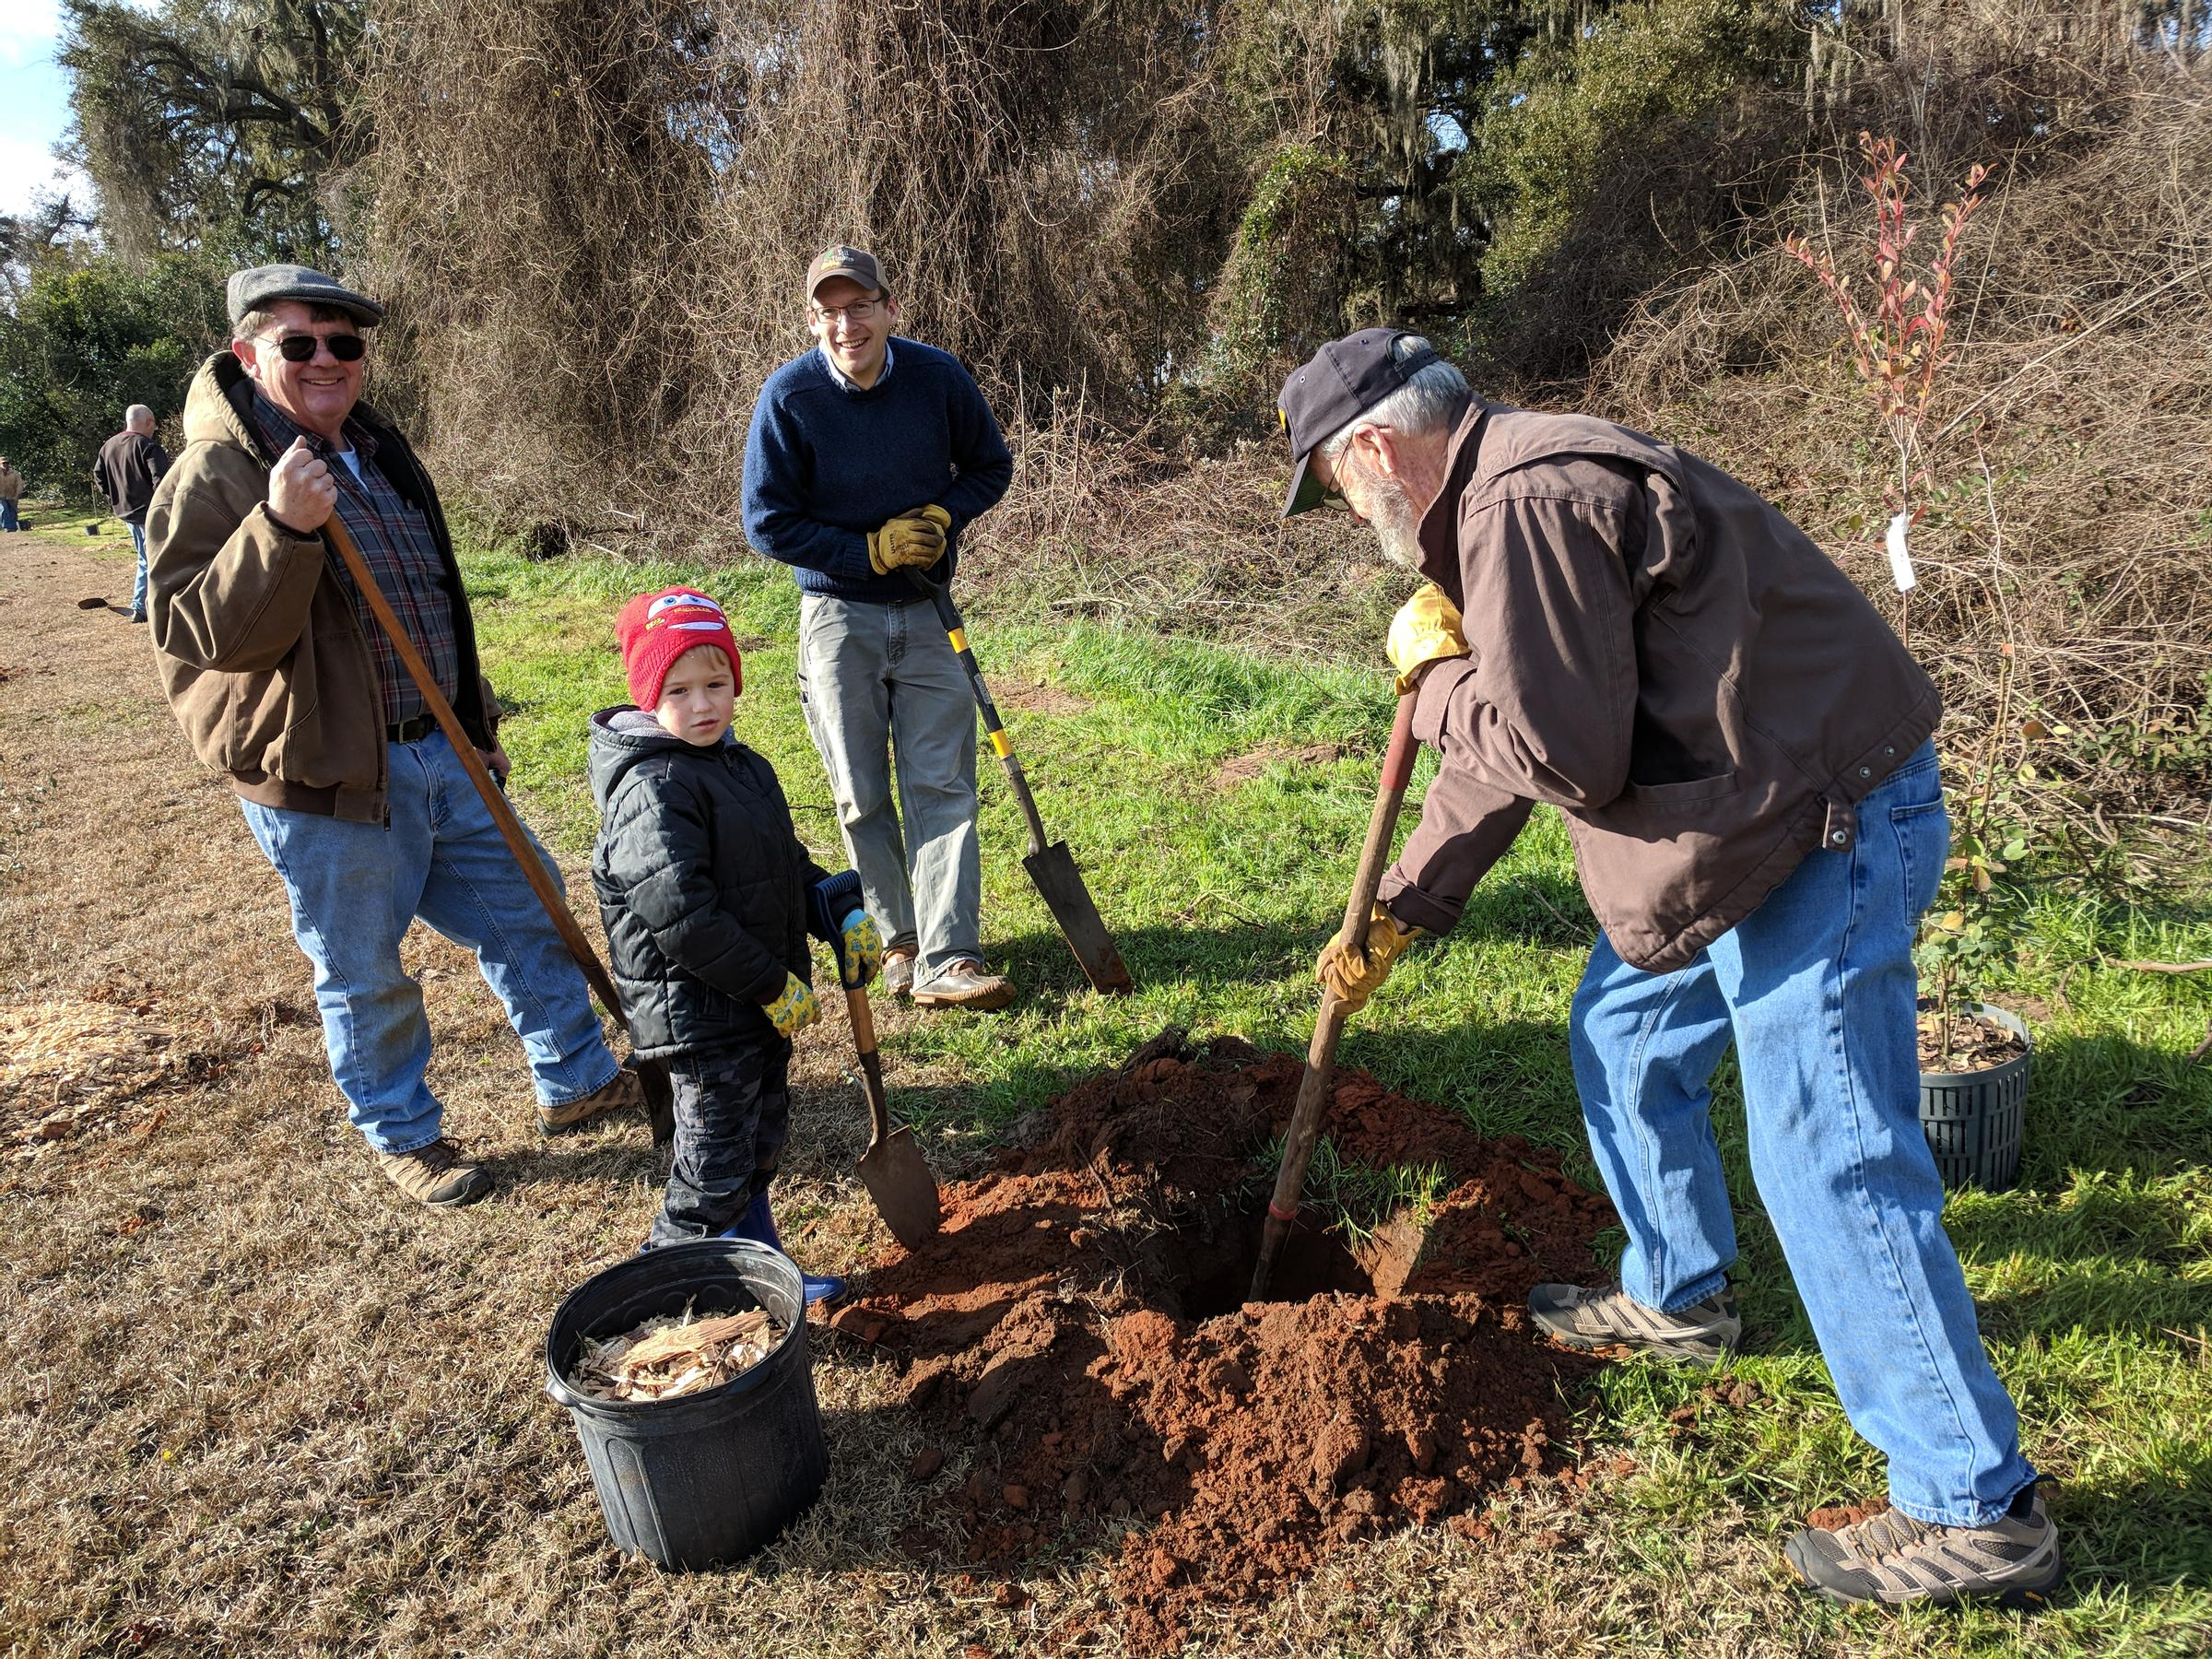 Volunteers helped plant more than 165 trees in the Apalachee Regional Park in honor of Arbor Day. (Photo: Courtesy Leon County)